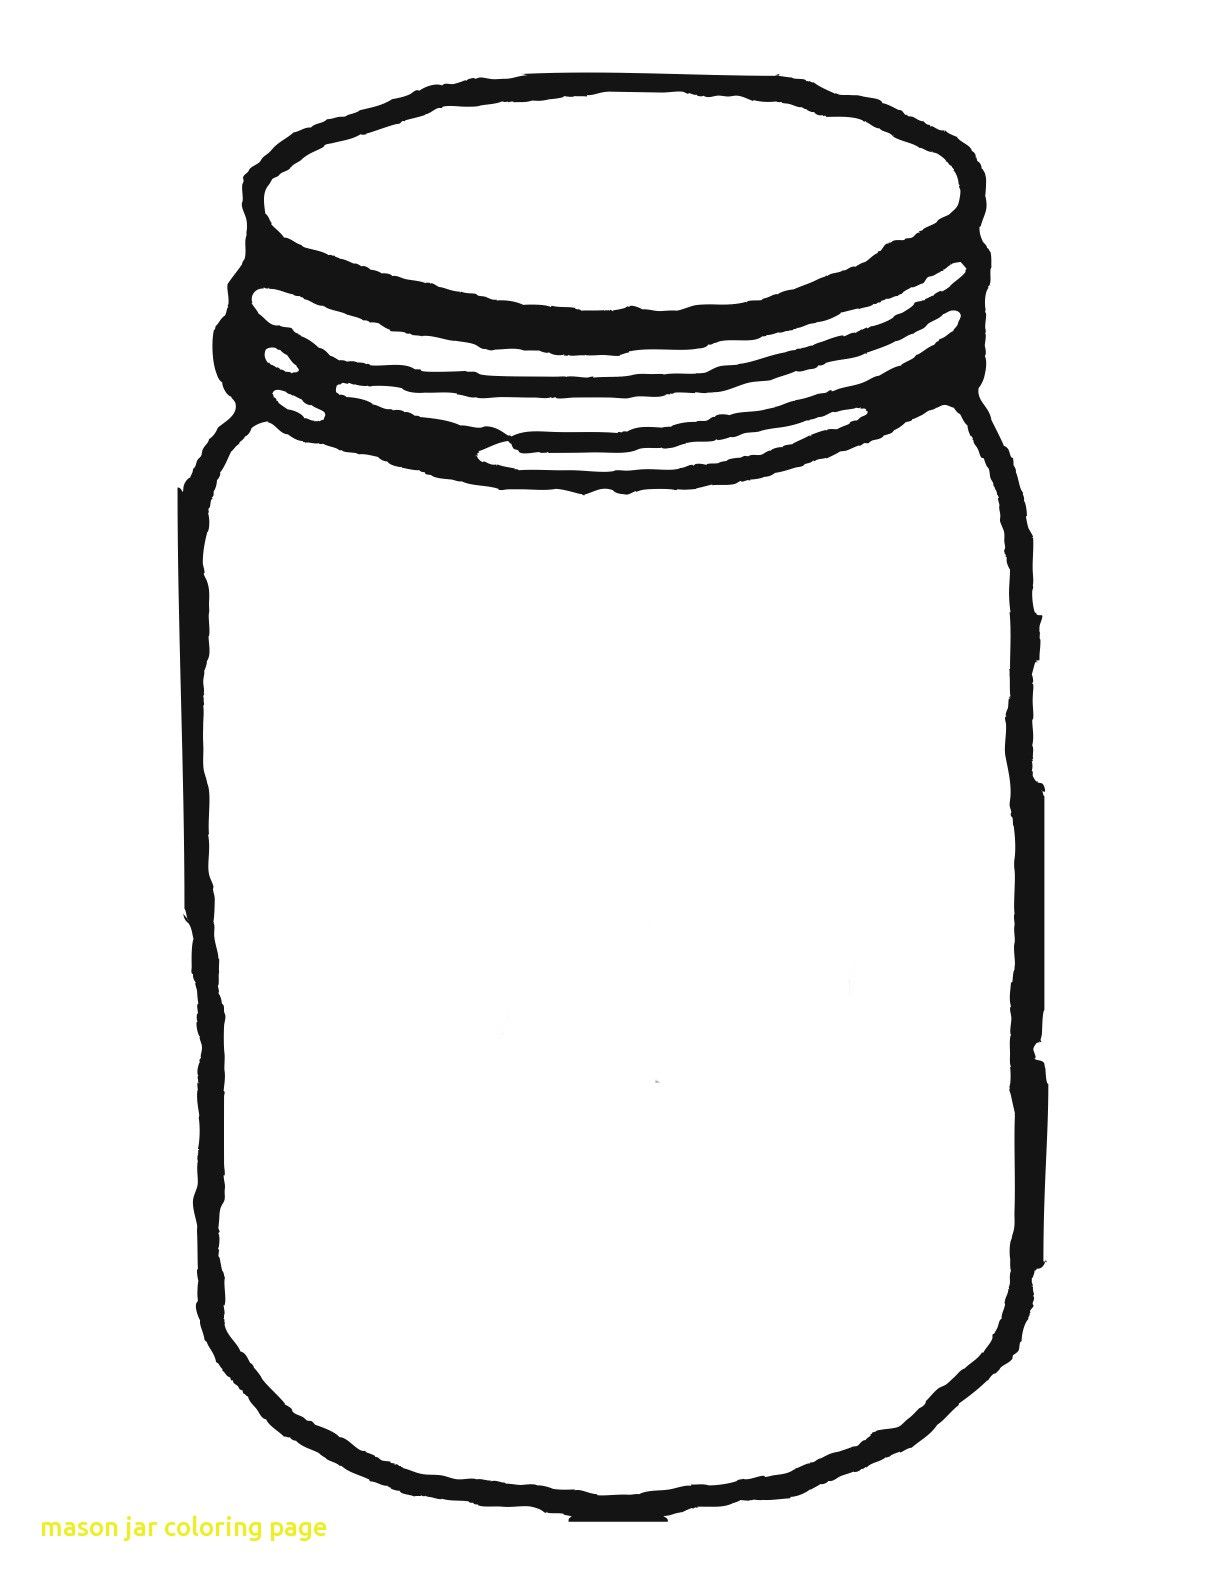 Mason Jar Coloring Page With Template For Clipart Clipartwiz And